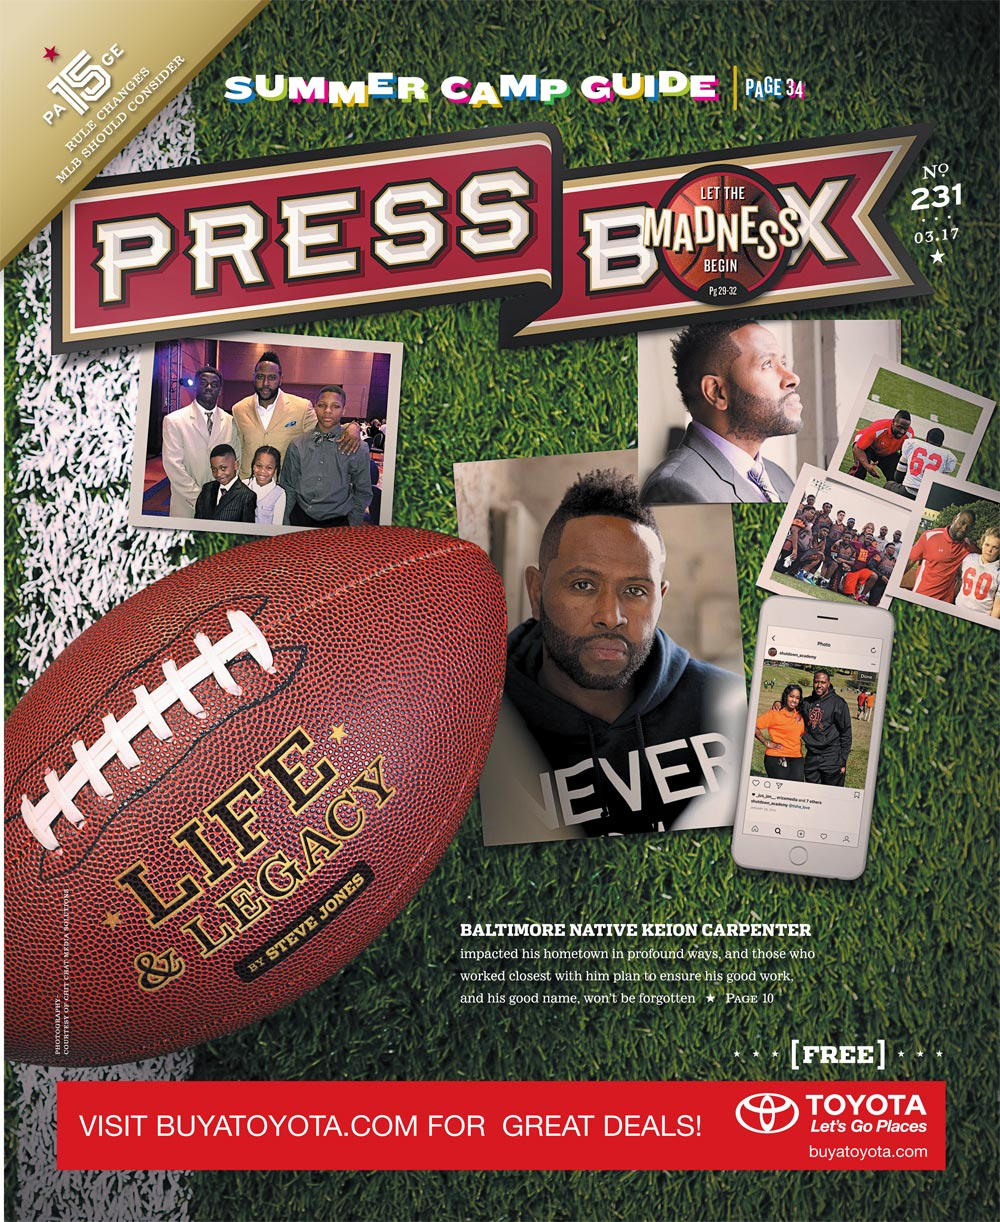 Issue-231-pressbox-march-2017-cover